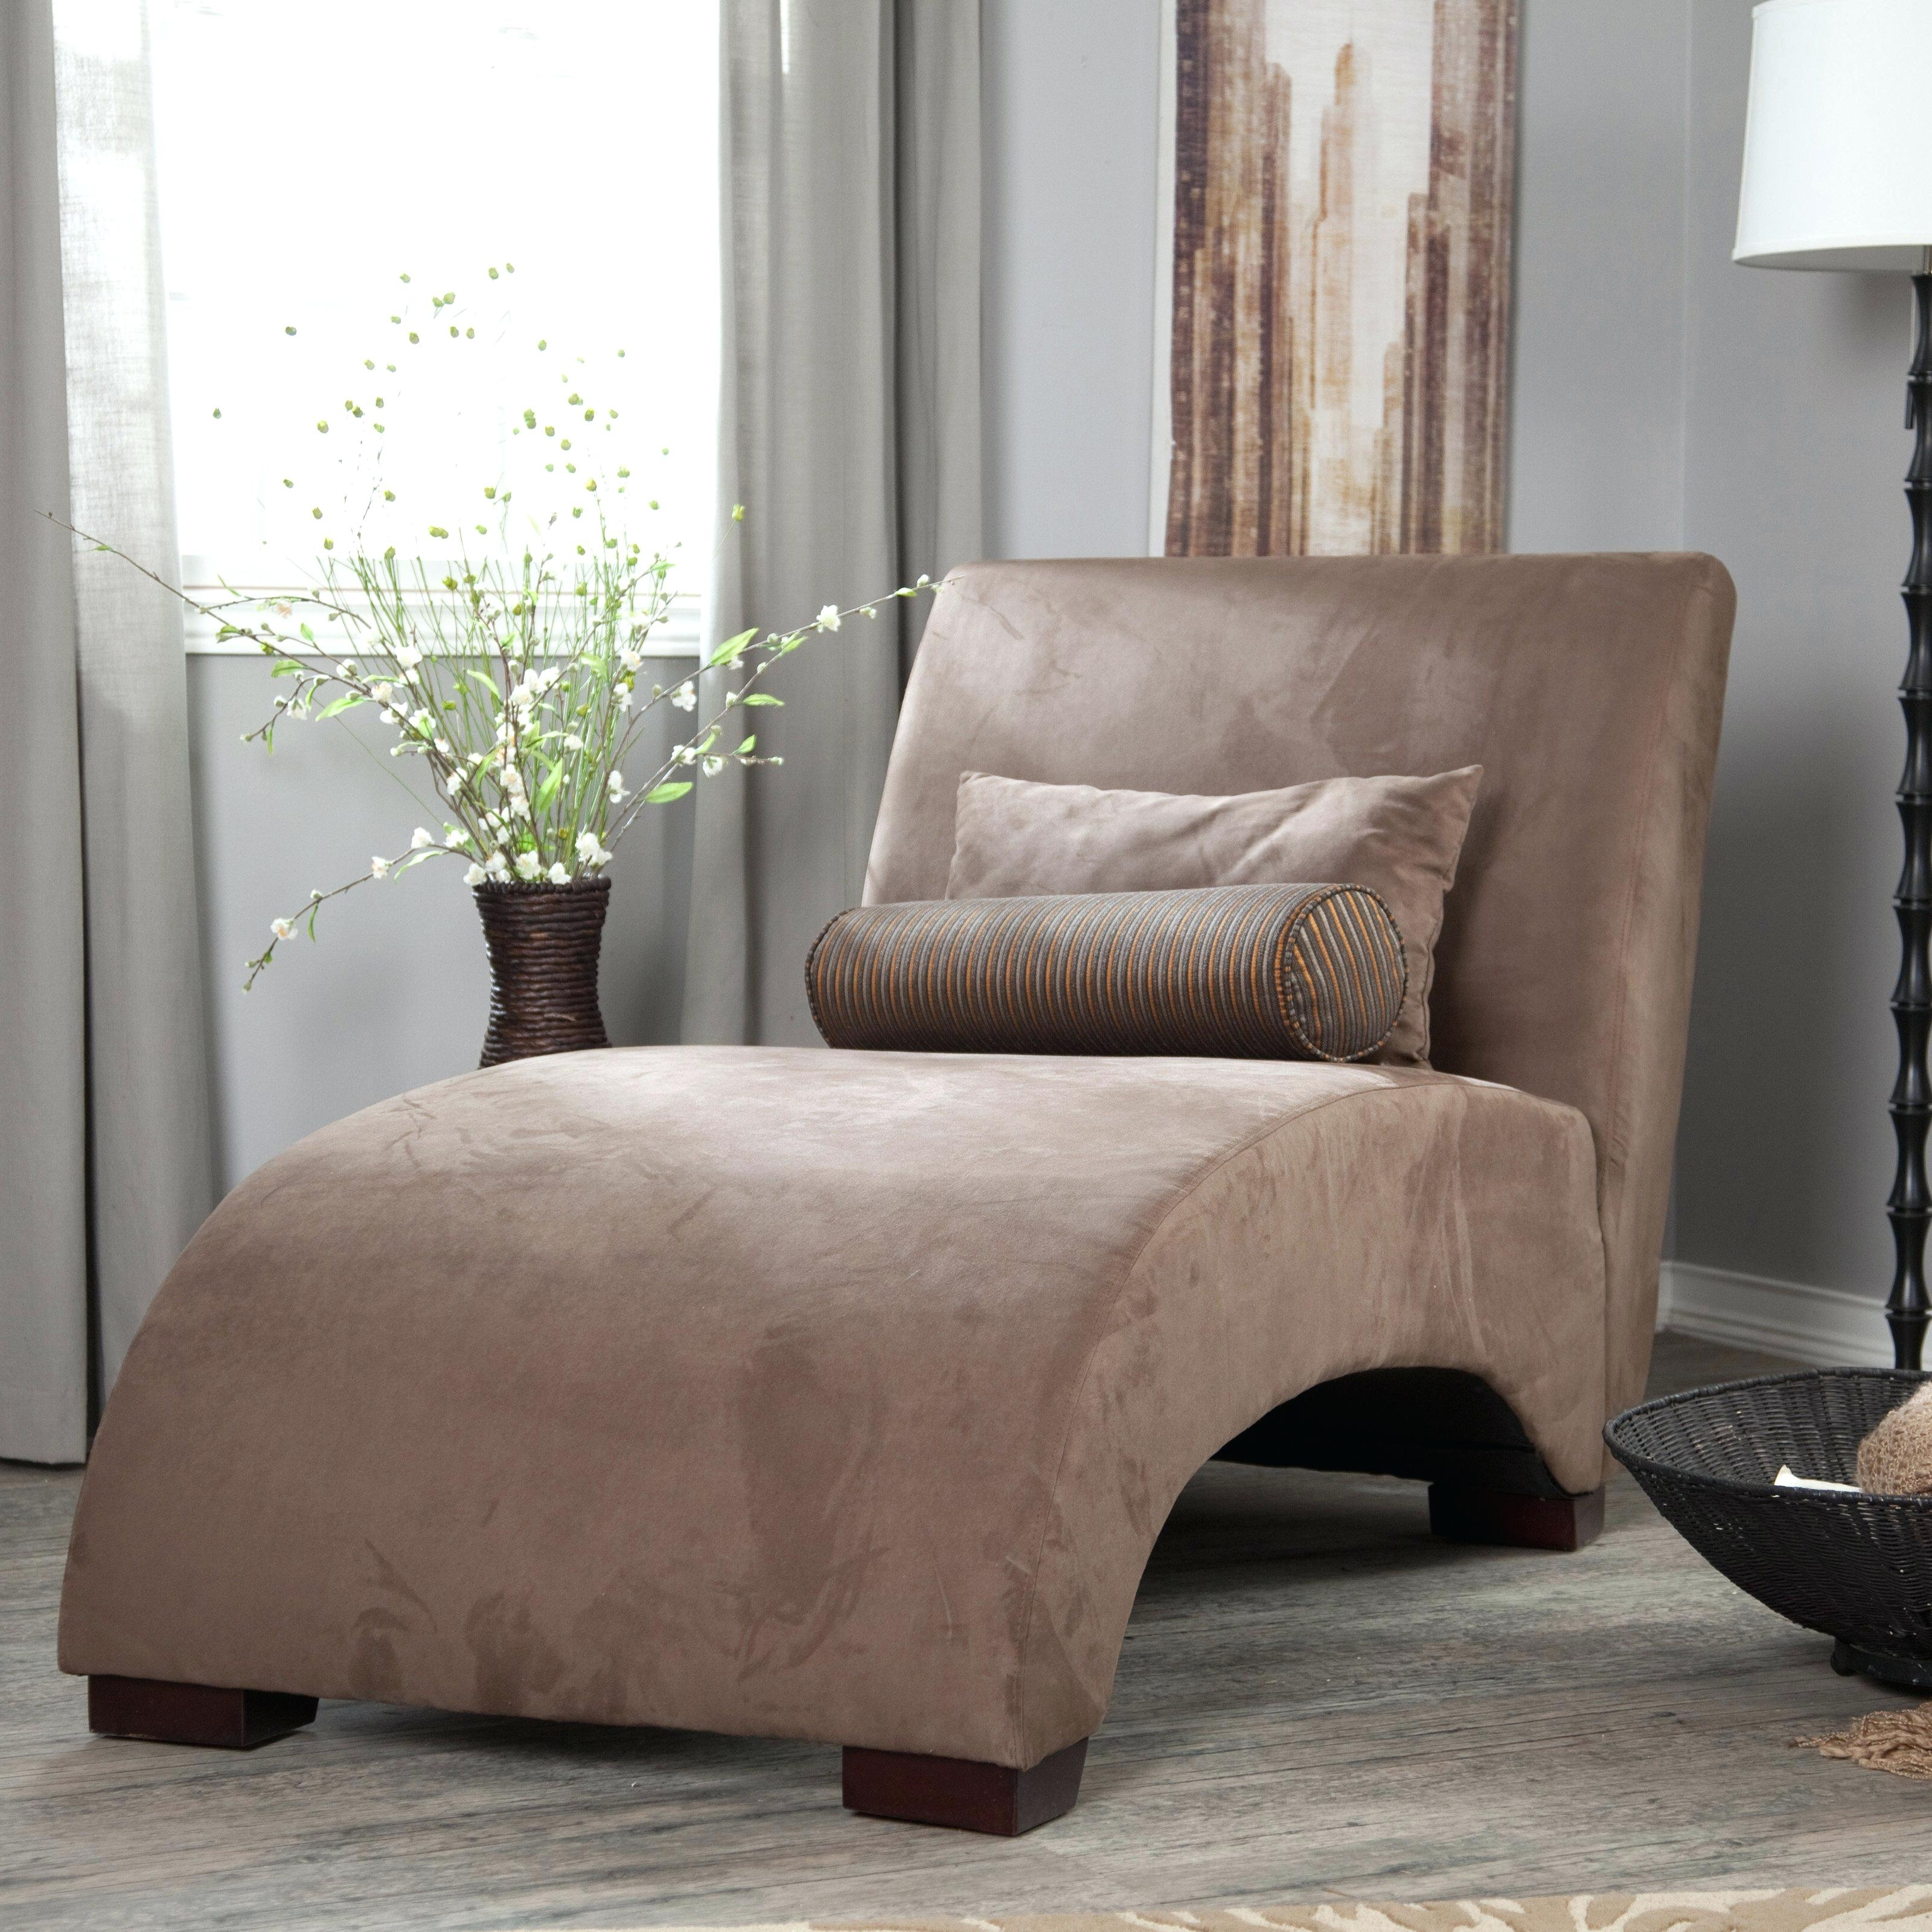 Most Recent Armless Lounge Chair Slipcovers • Lounge Chairs Ideas Regarding Chaise Slipcovers (View 6 of 15)